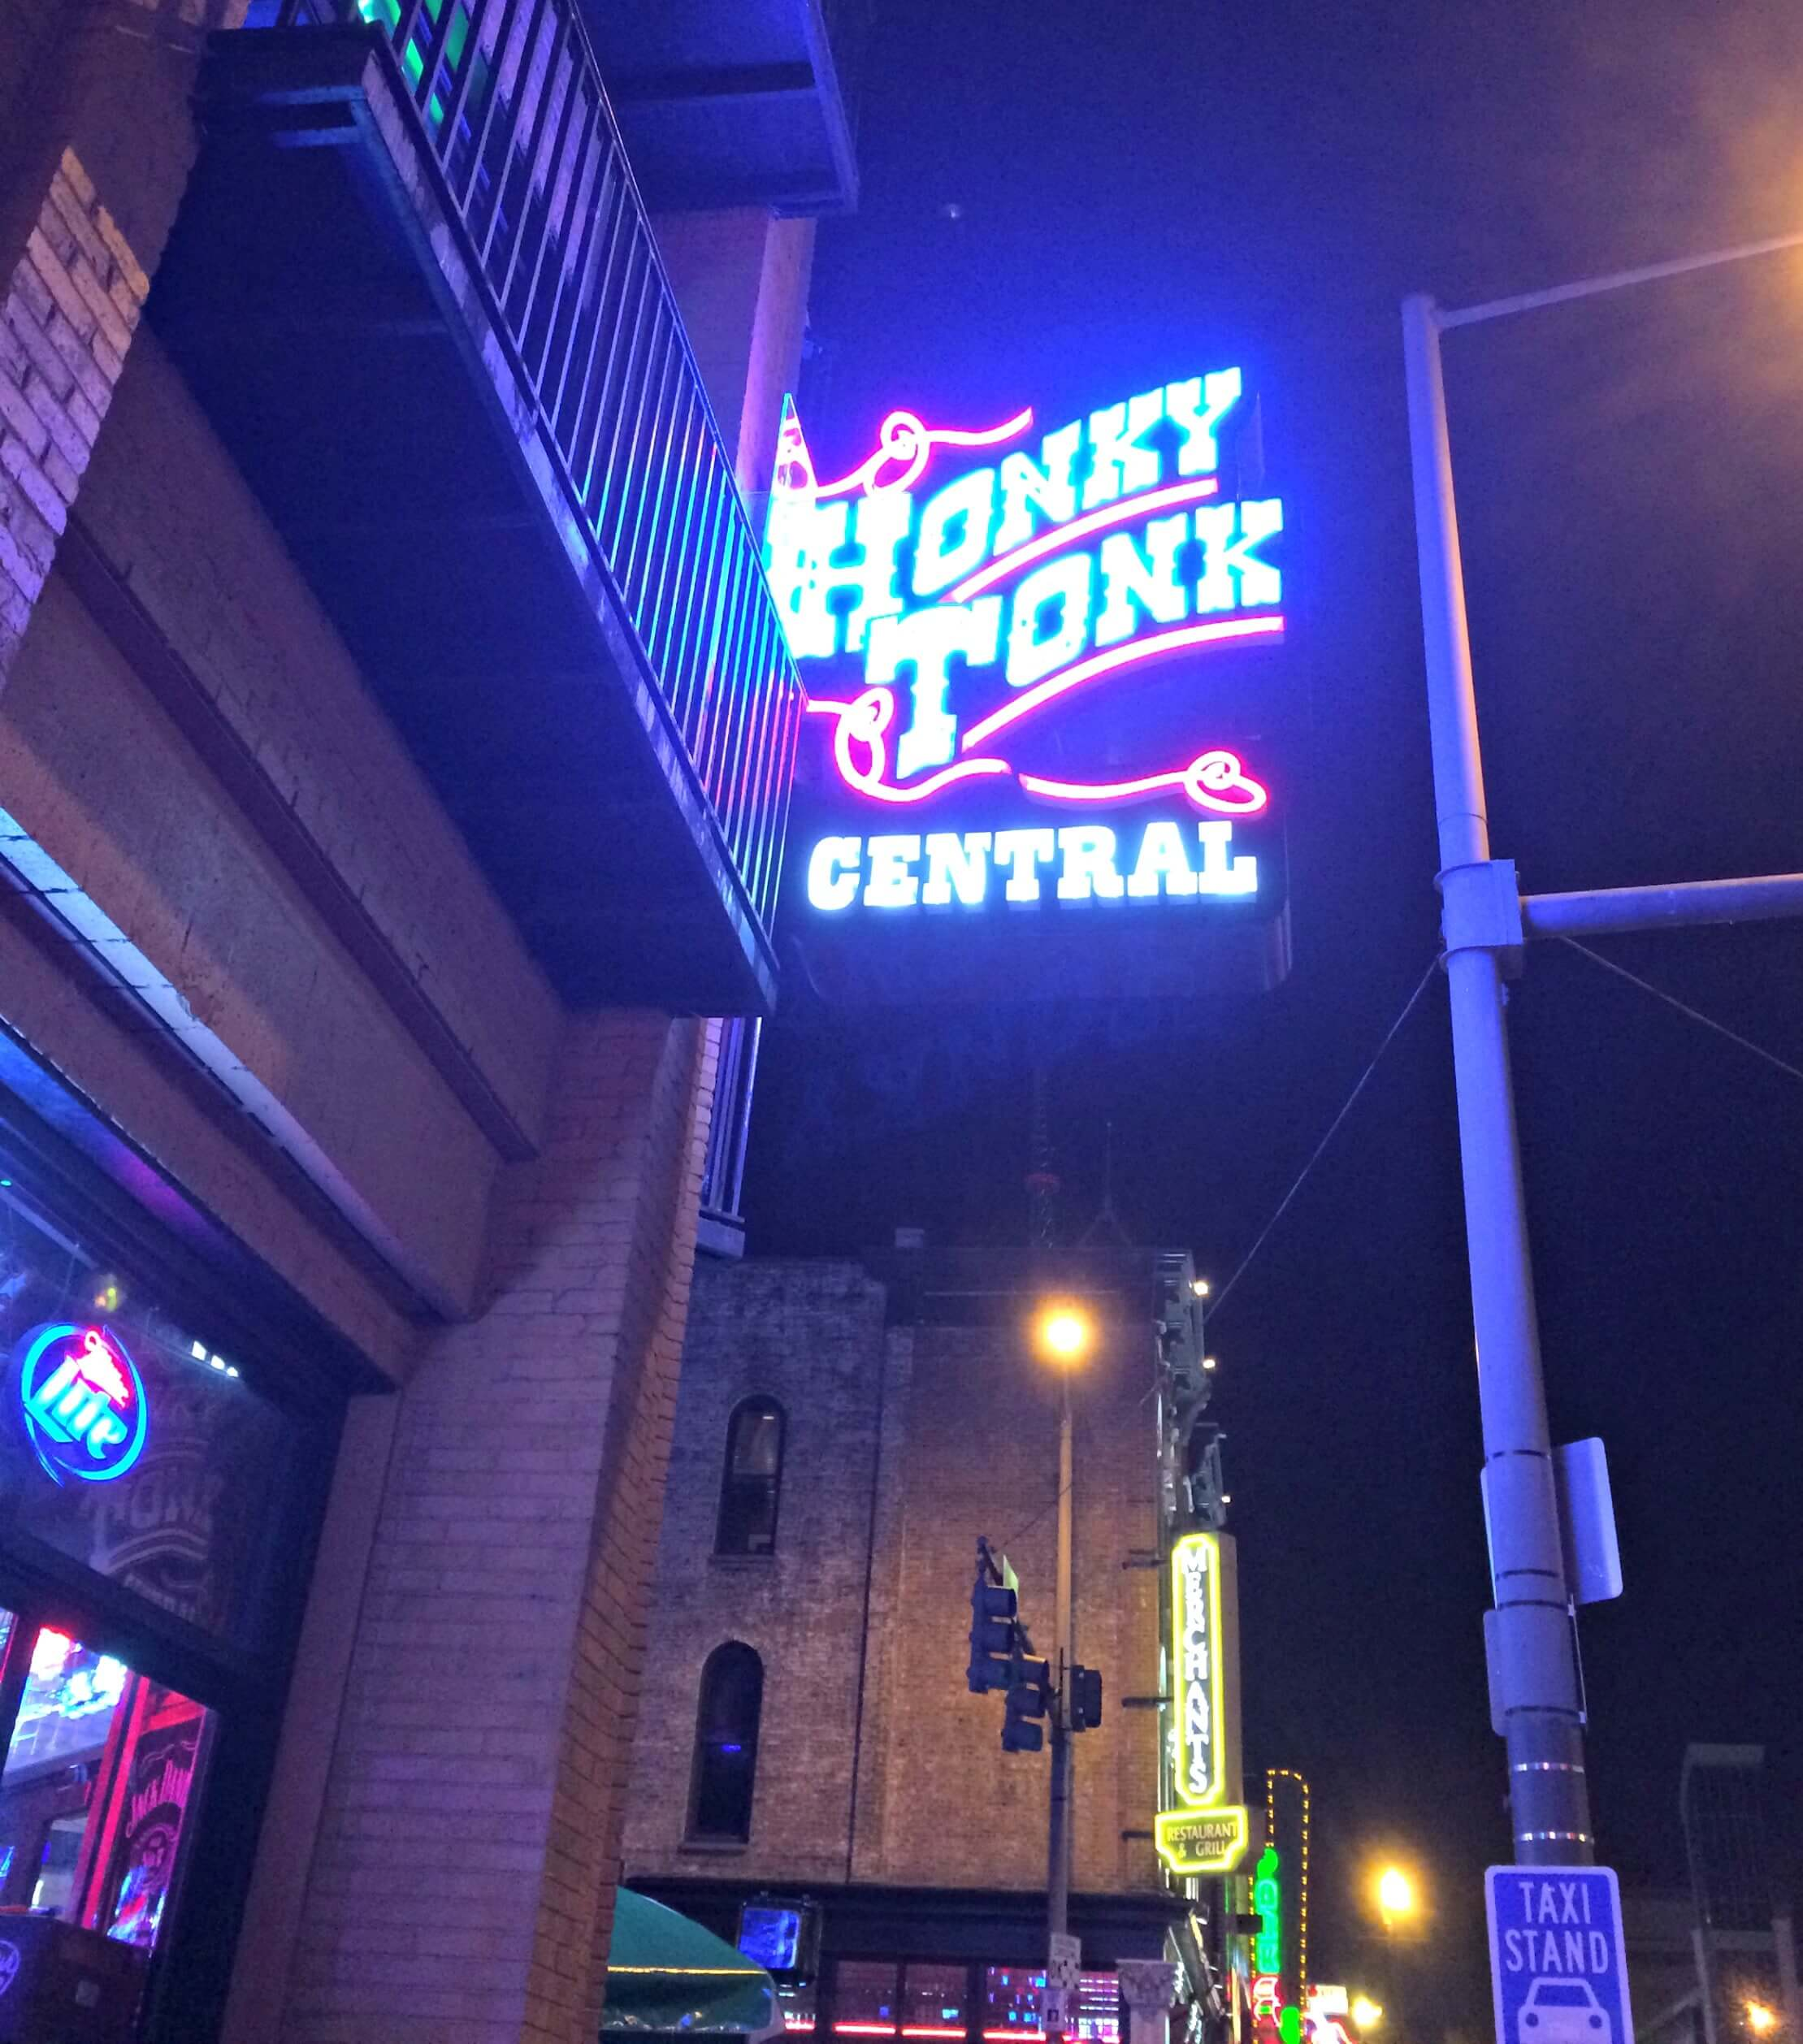 honky tonk central - Nashville, TN